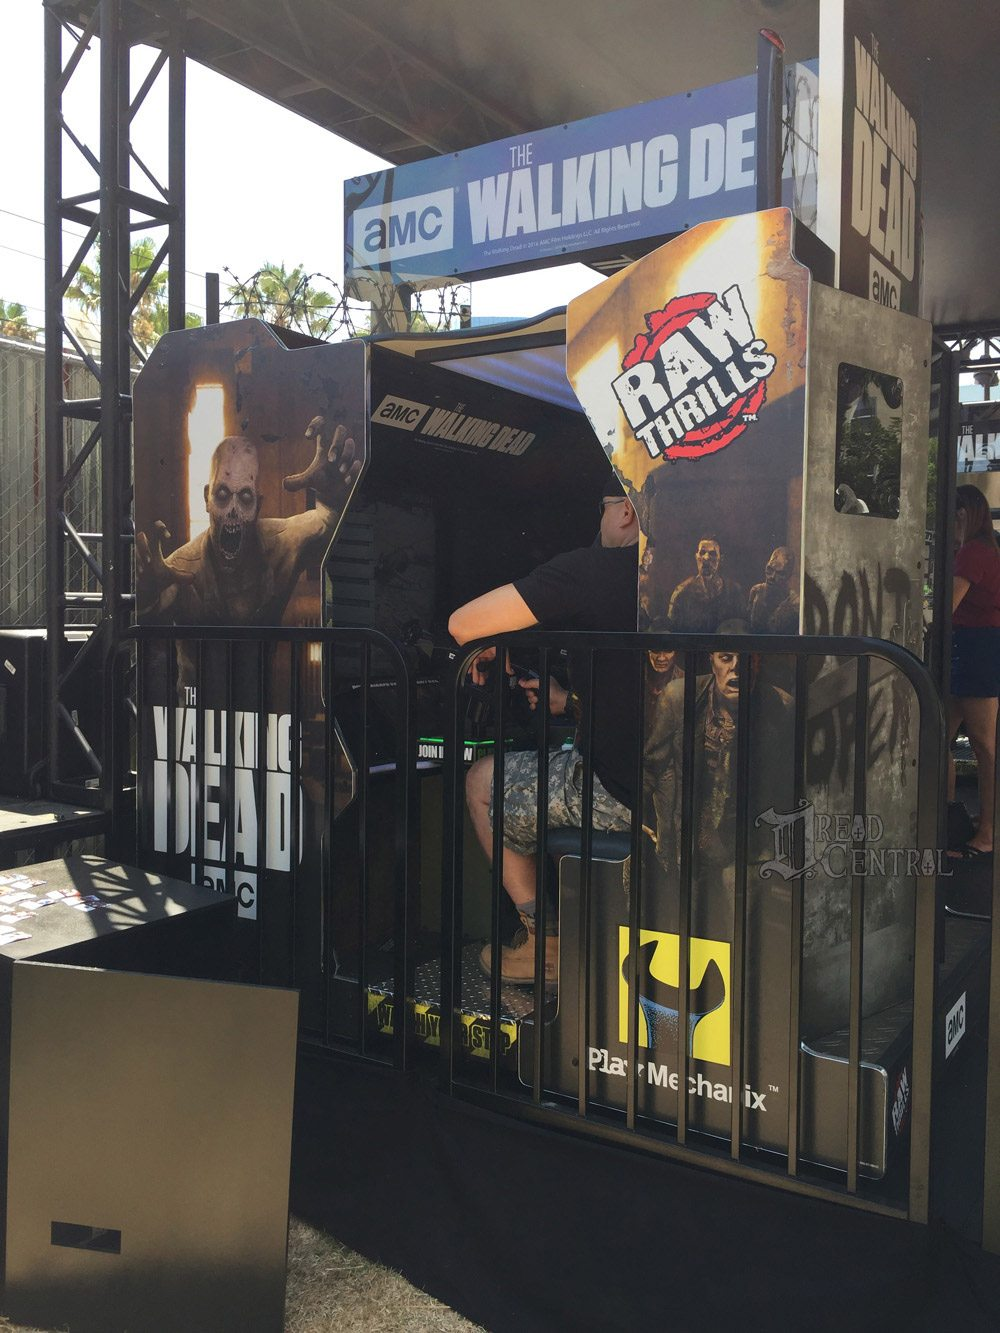 twd dq 9 - #SDCC17: We Took on The Walking Dead Encounter and Lived to Tell About It!